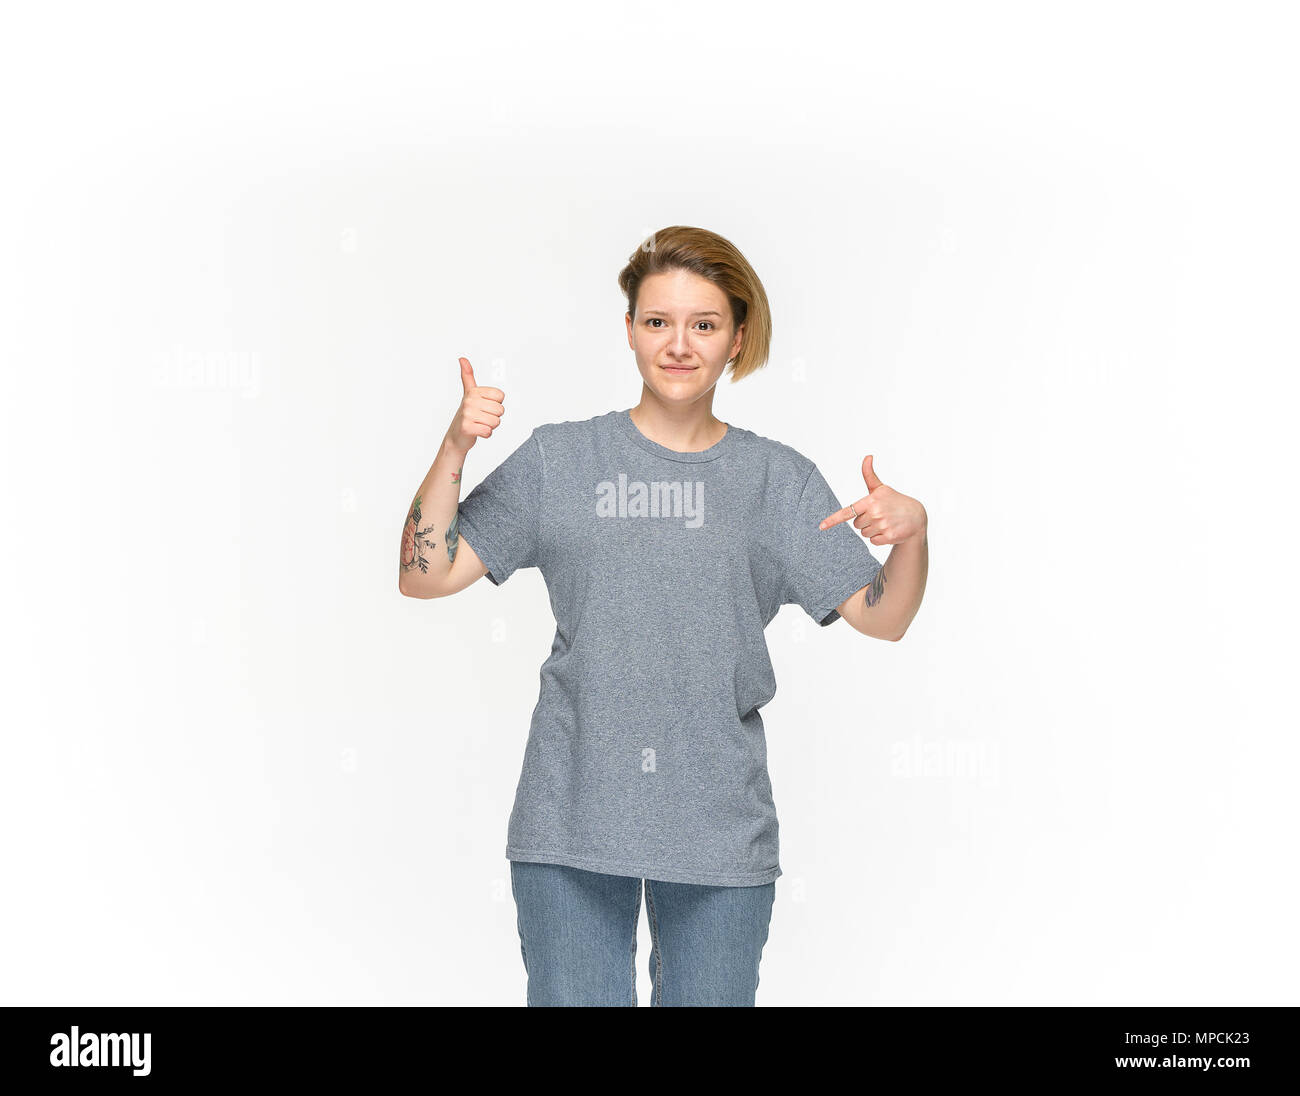 f8b6eb720db9 Closeup of young woman s body in empty gray t-shirt isolated on white  background.